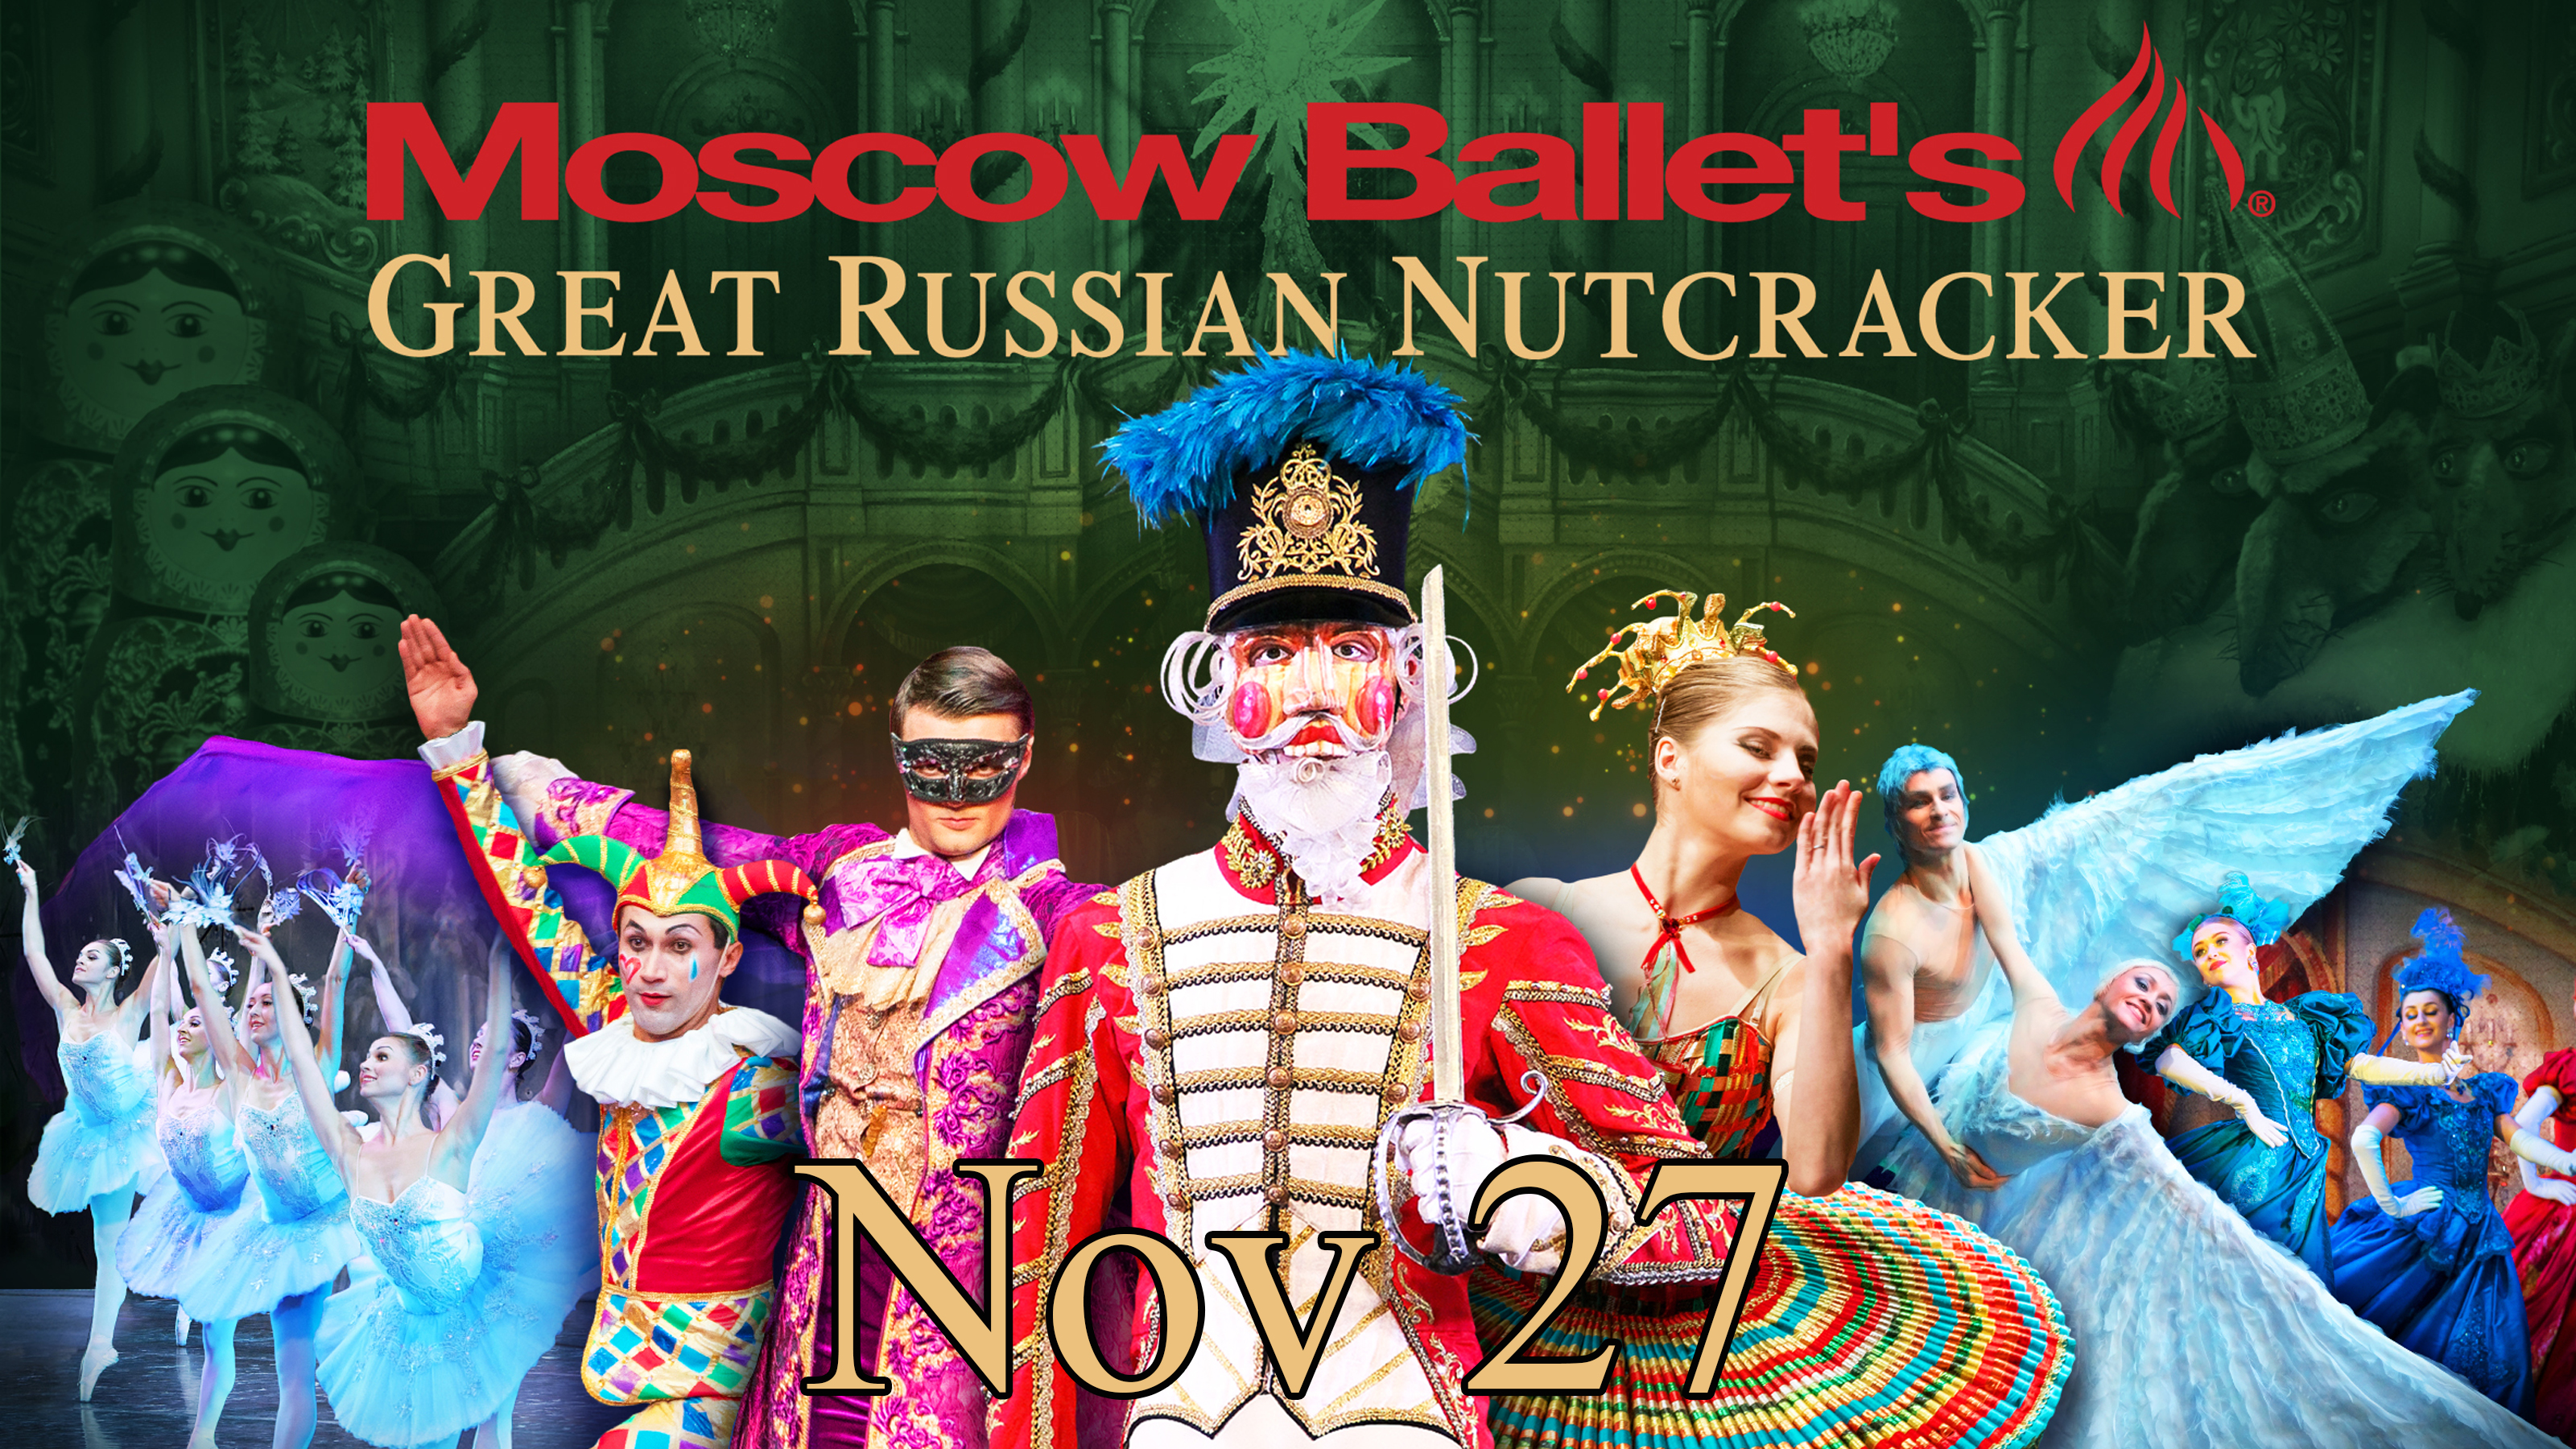 Moscow Ballet - Great Russian Nutcracker - Nov 27